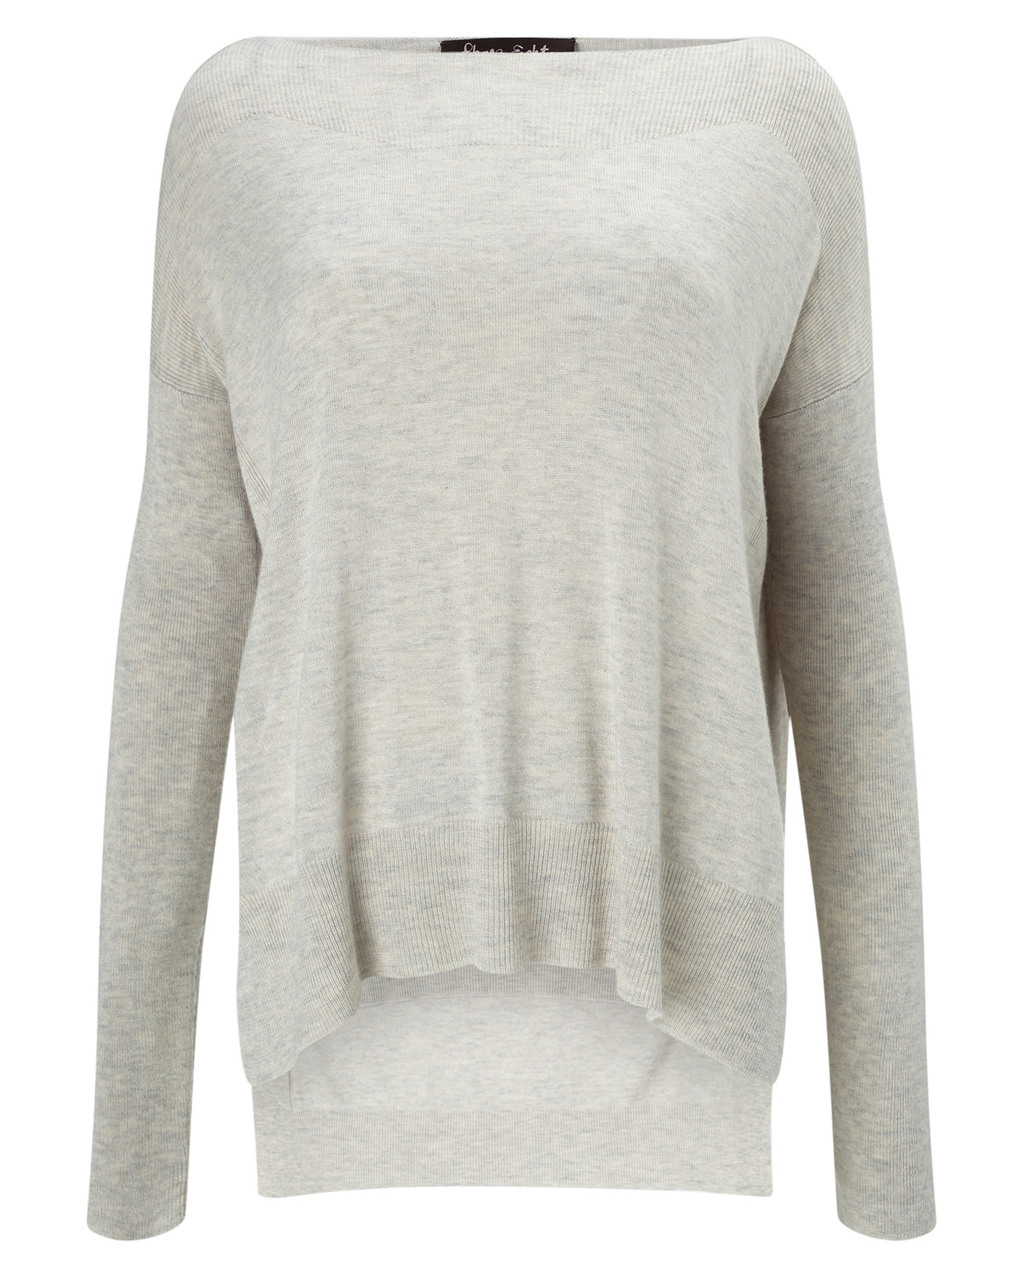 Bria Jumper - neckline: slash/boat neckline; pattern: plain; style: standard; predominant colour: light grey; occasions: casual, creative work; length: standard; fibres: wool - mix; fit: loose; back detail: longer hem at back than at front; sleeve length: long sleeve; sleeve style: standard; texture group: knits/crochet; pattern type: knitted - fine stitch; season: s/s 2016; wardrobe: basic